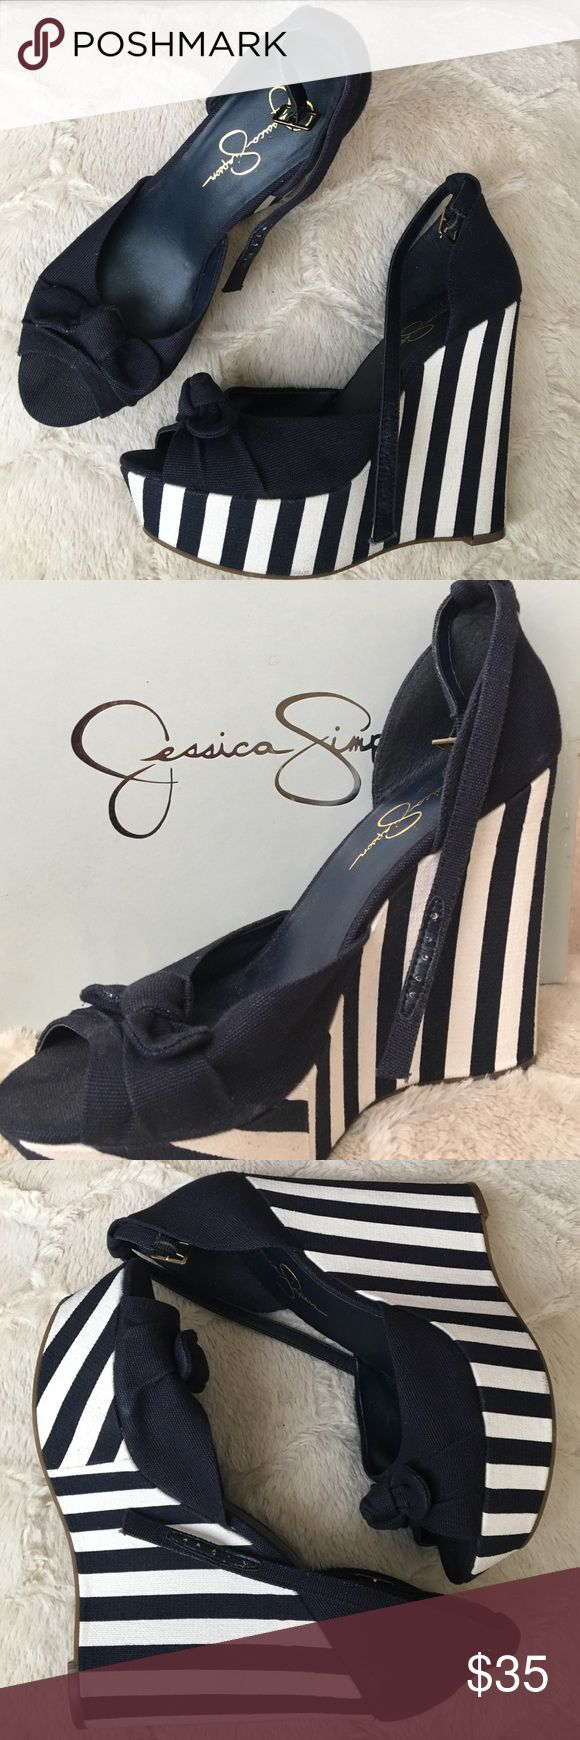 Jessica Simpson Striped Wedges Jessica Simpson blue and white wedges with jean design material! The top of the show has a  beautiful bow. Shoes will come with original box! Jessica Simpson Shoes Wedges